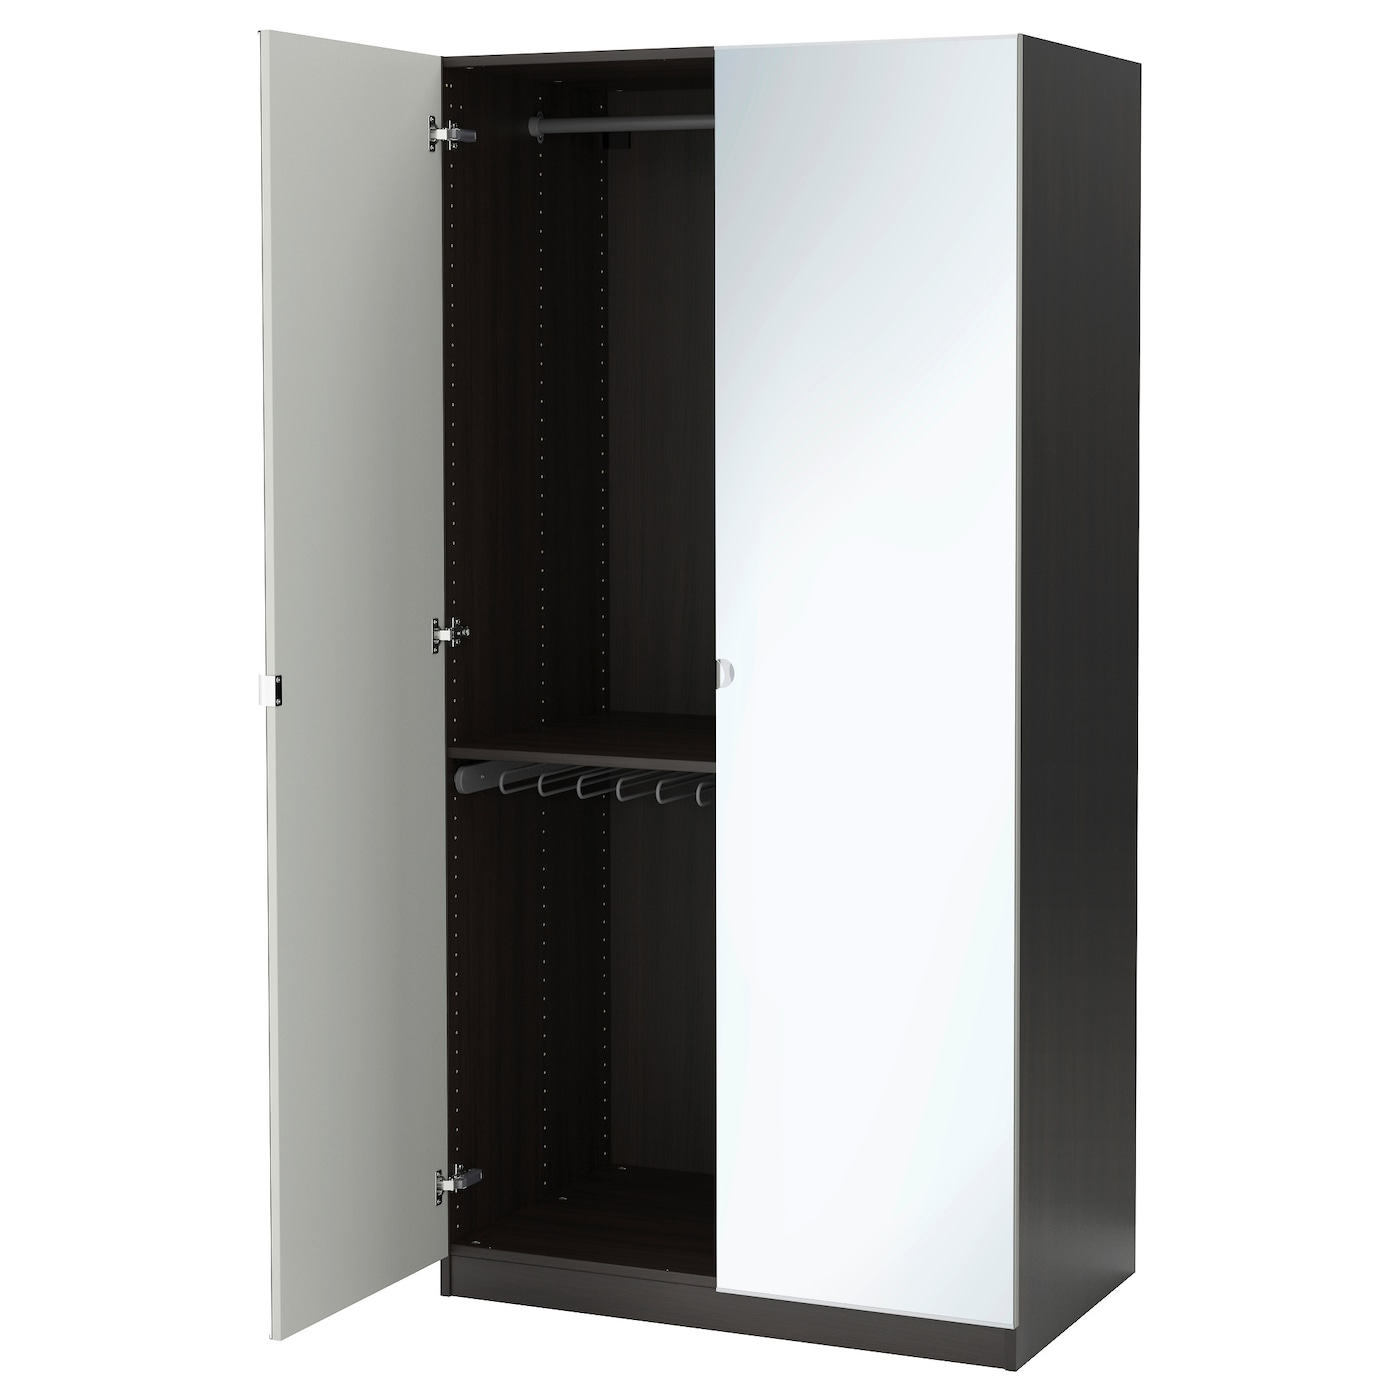 pax armoire penderie brun noir vikedal miroir 100 x 60 x. Black Bedroom Furniture Sets. Home Design Ideas